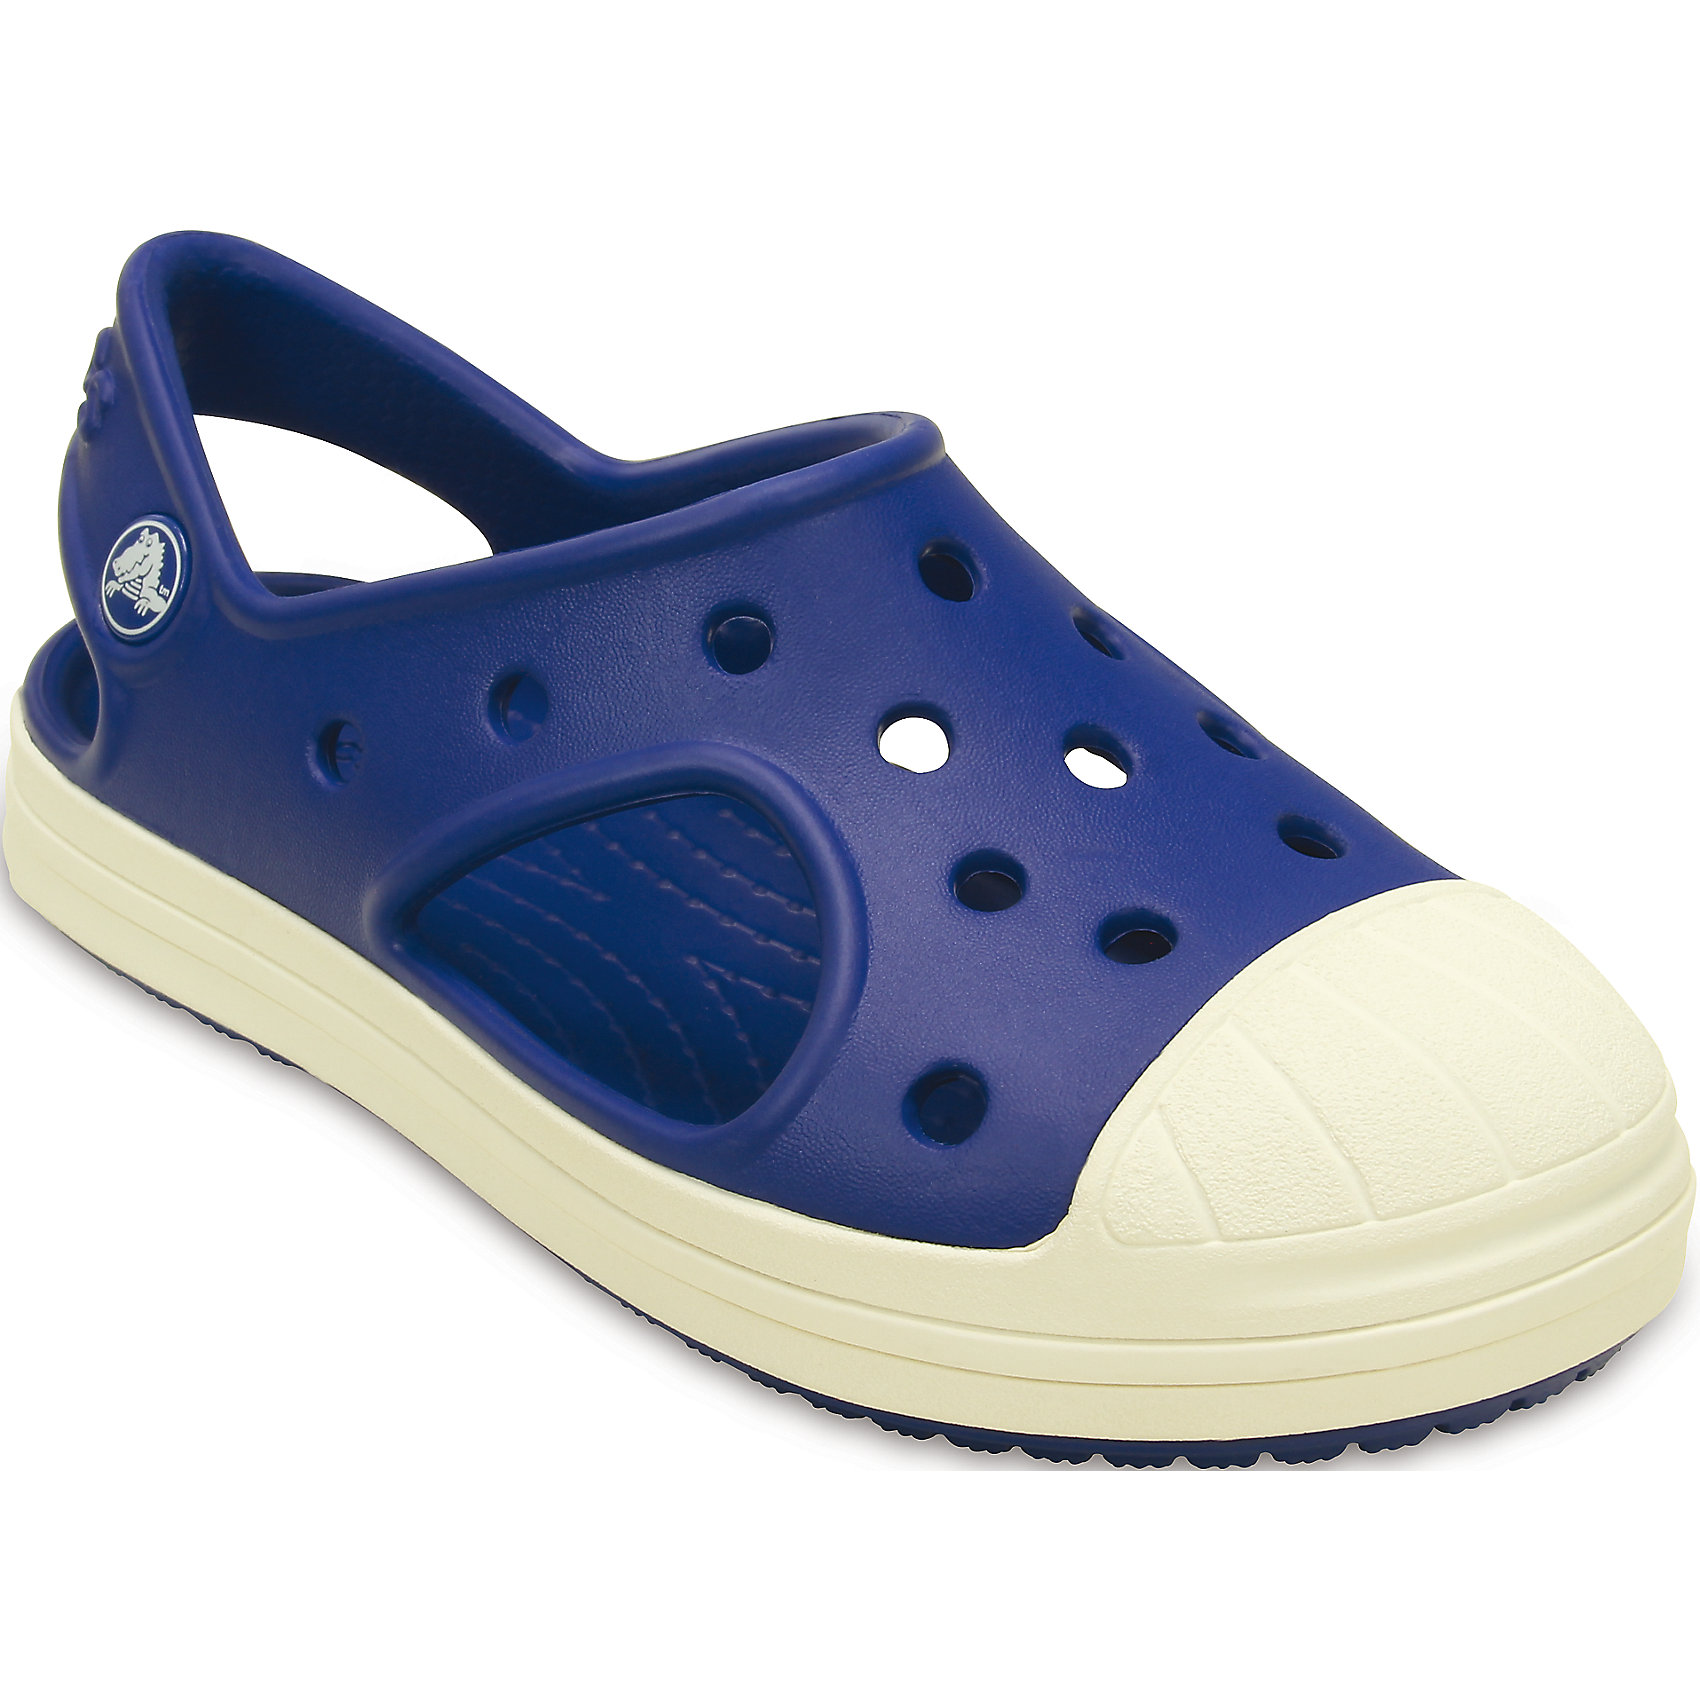 crocs Сандалии Kids' Crocs Bump It Sandal Crocs crocs мокасины